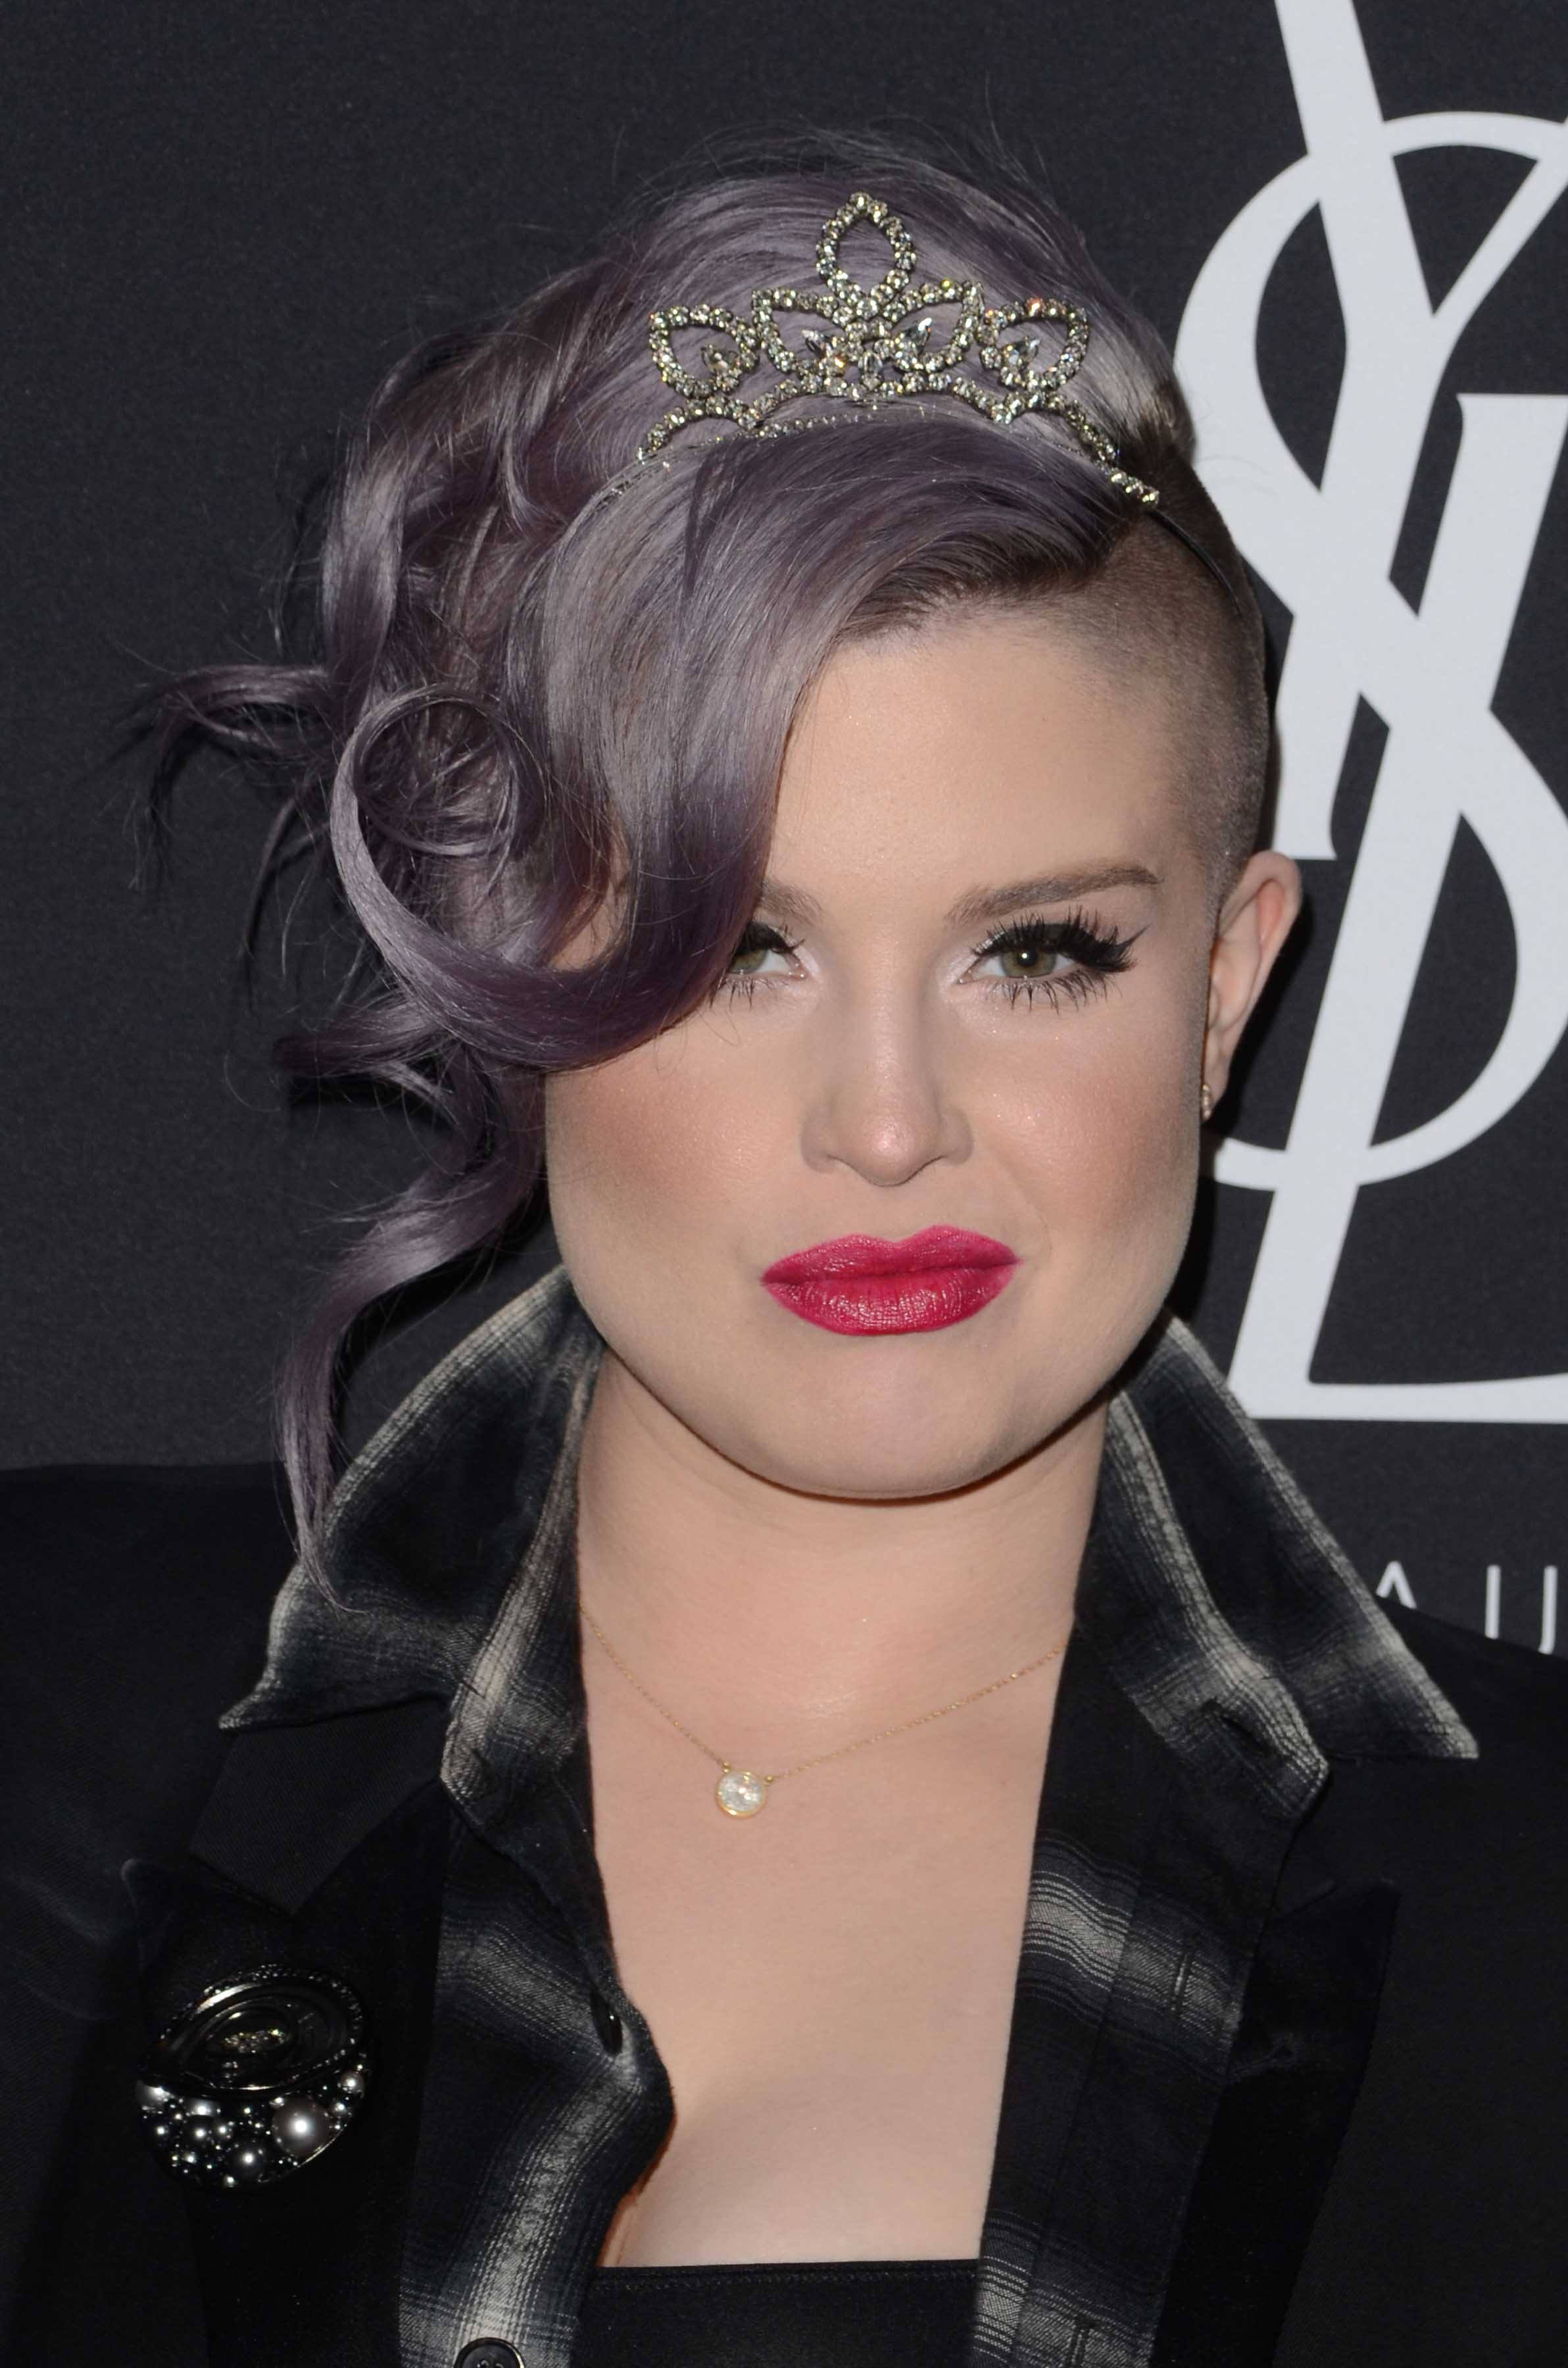 hair accessories 2016: All Things Hair - IMAGE - celebrity hairstyles Kelly Osbourne purple silver wavy updo